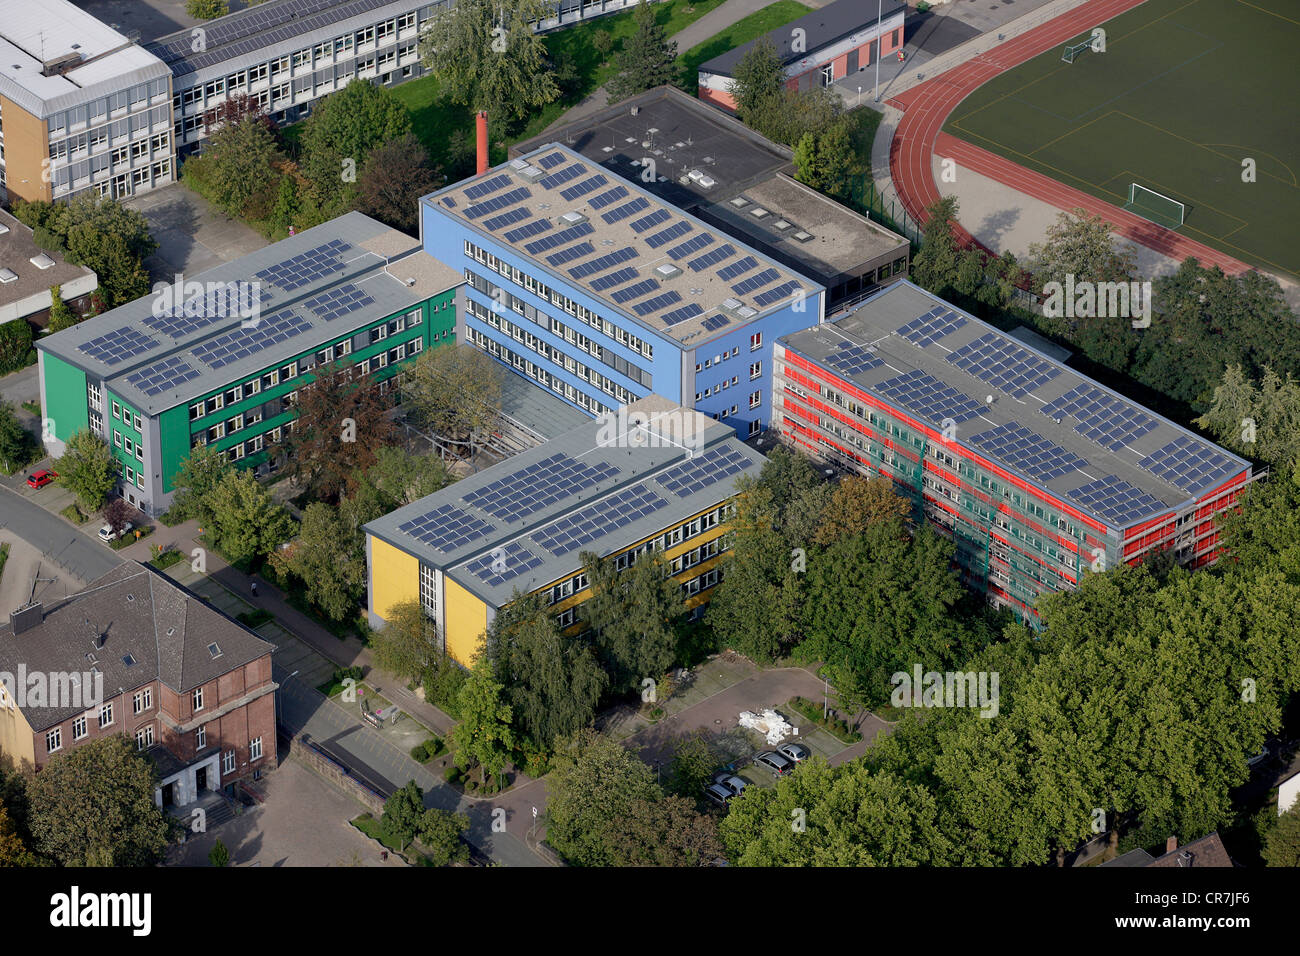 Aerial view, solar panels on roofs, vocational schools in Husemannstrasse, Witten, Ruhr Area, North Rhine-Westphalia Stock Photo